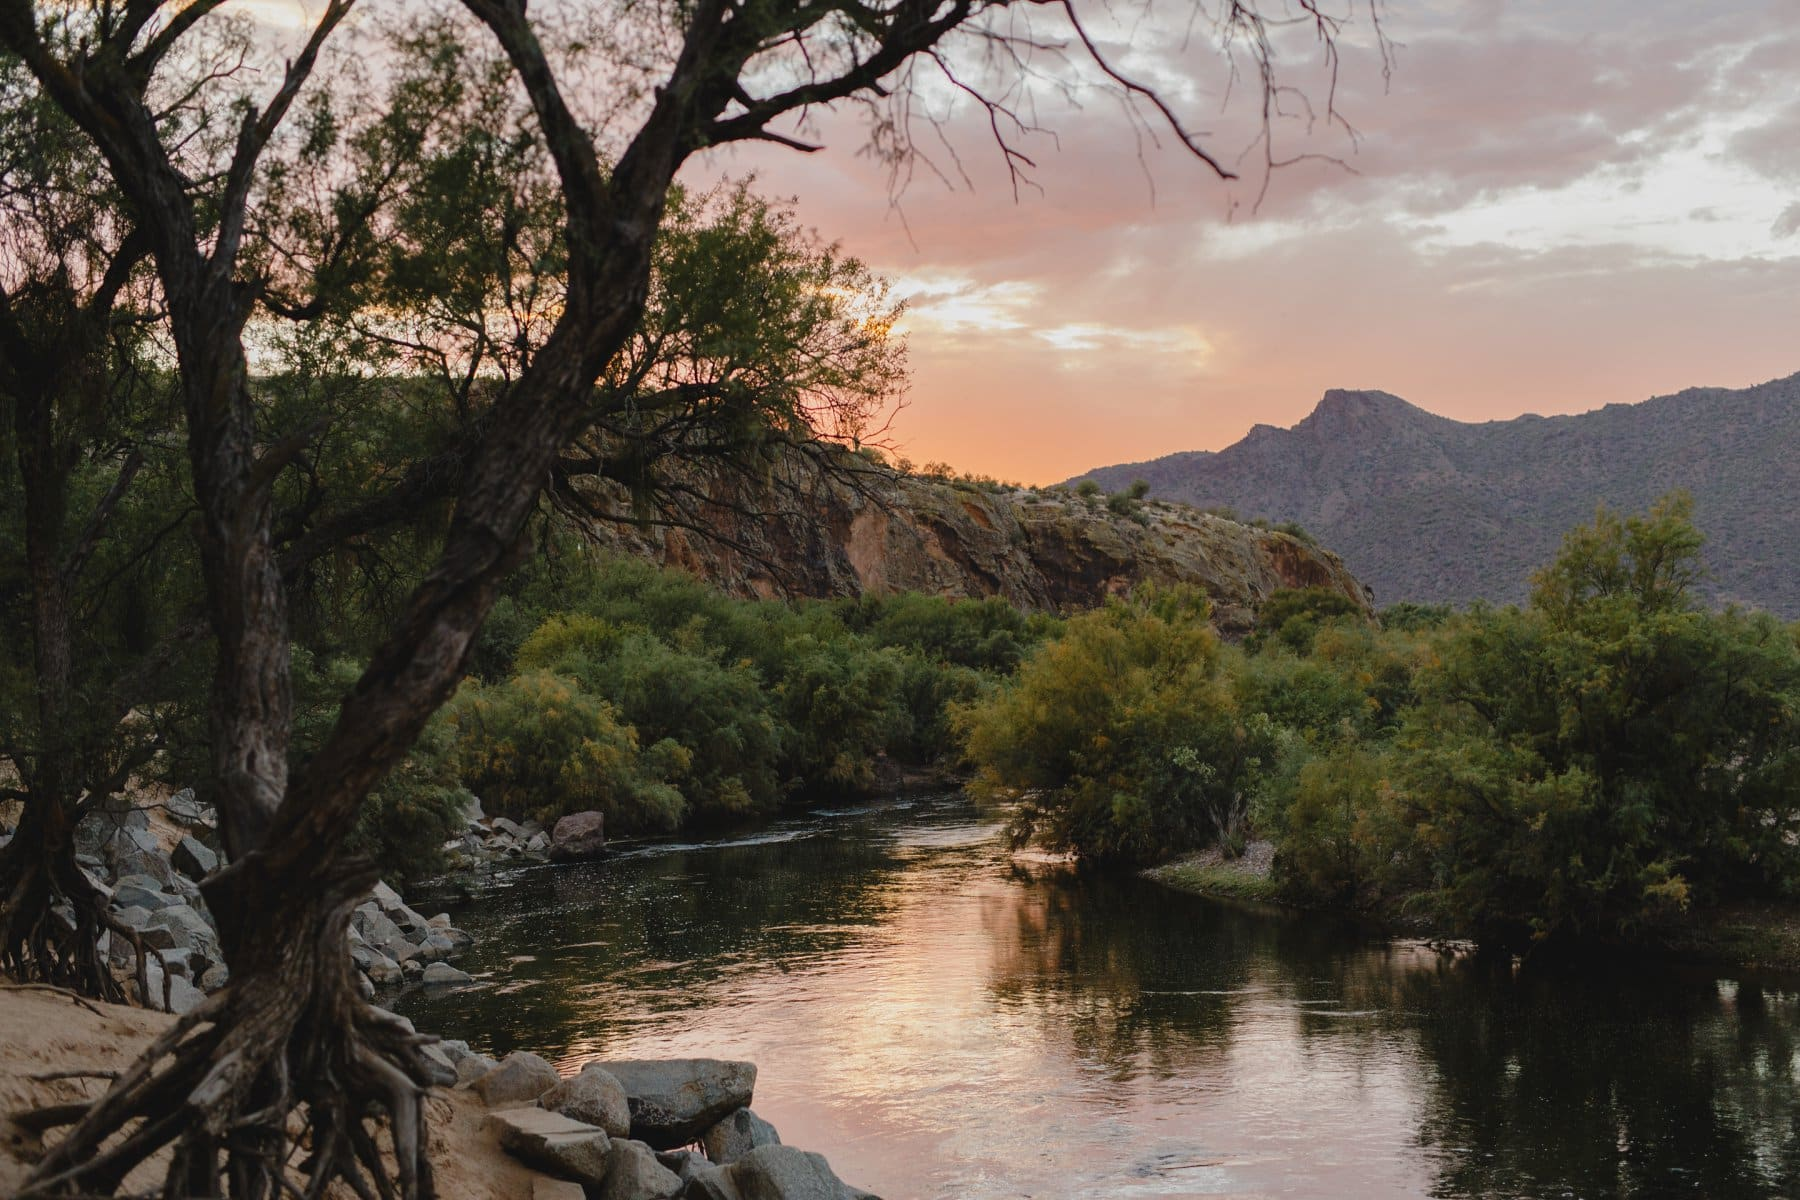 Salt River at sunset